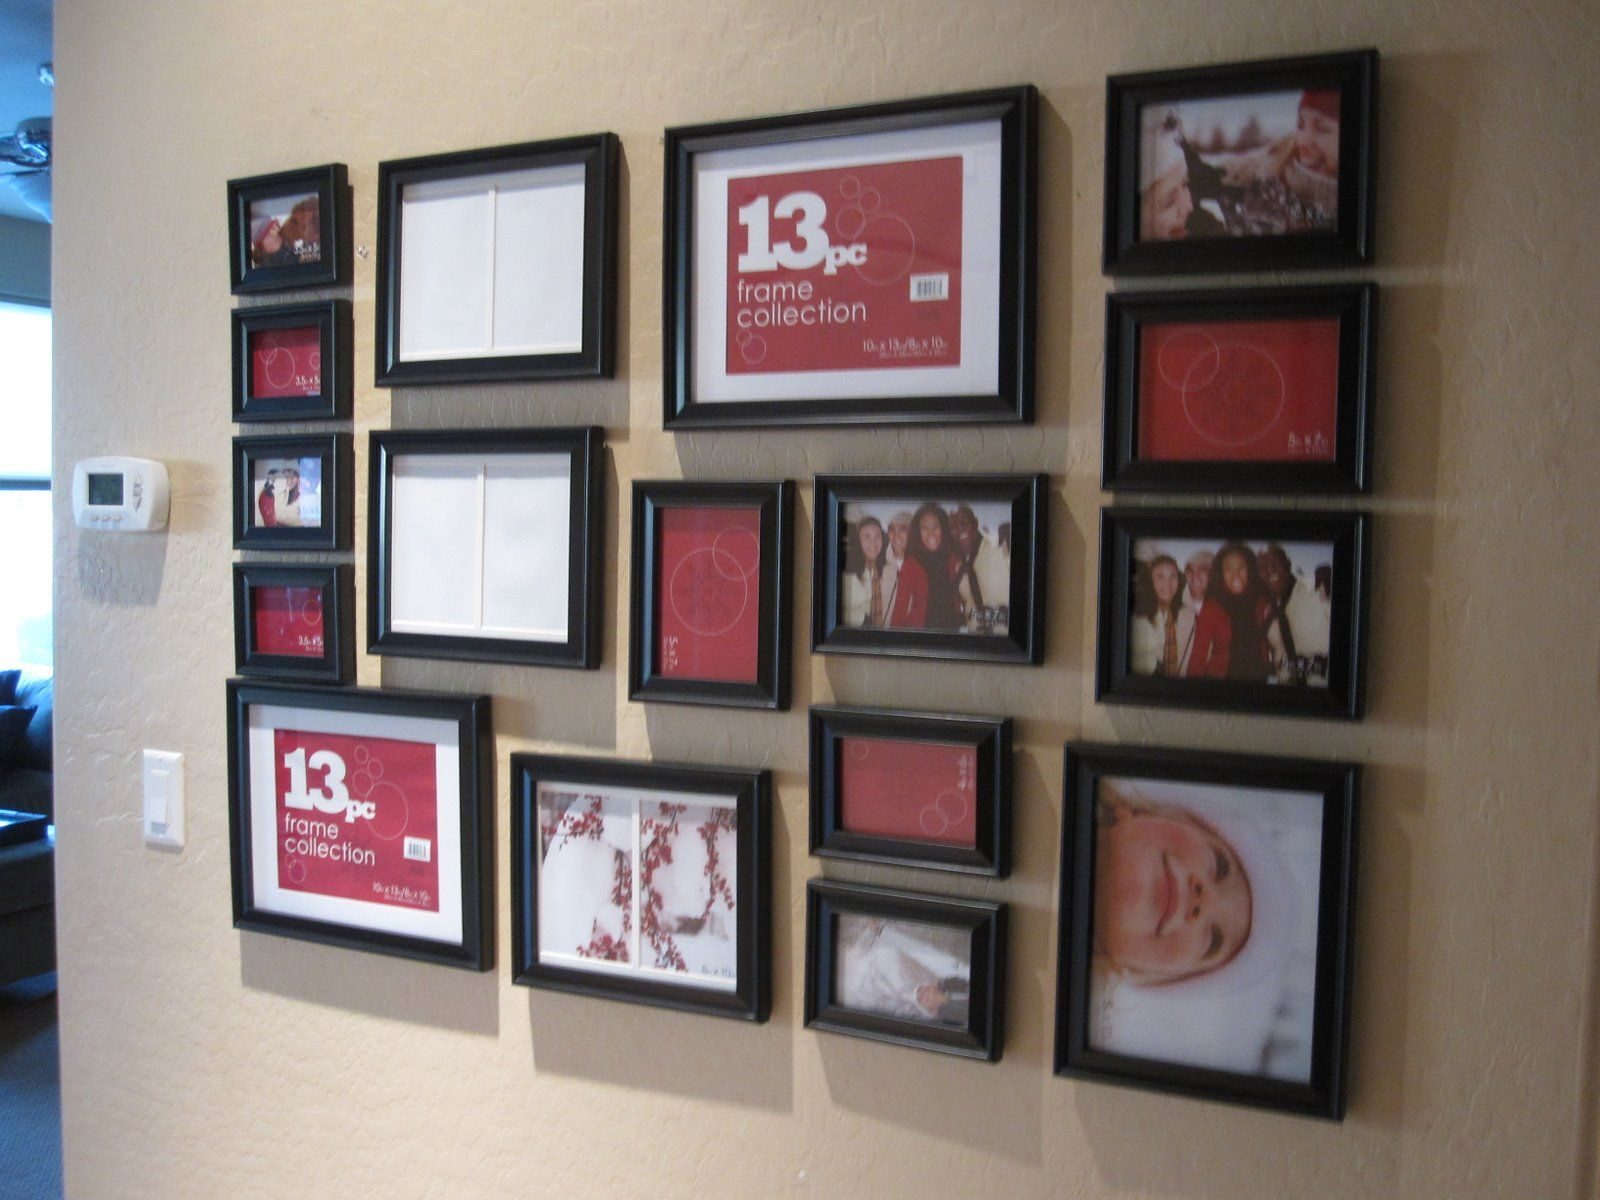 10x13,8x10,4x6,3.5x5,5x7 | Picture Wall | Pinterest | Pasillos y Tv